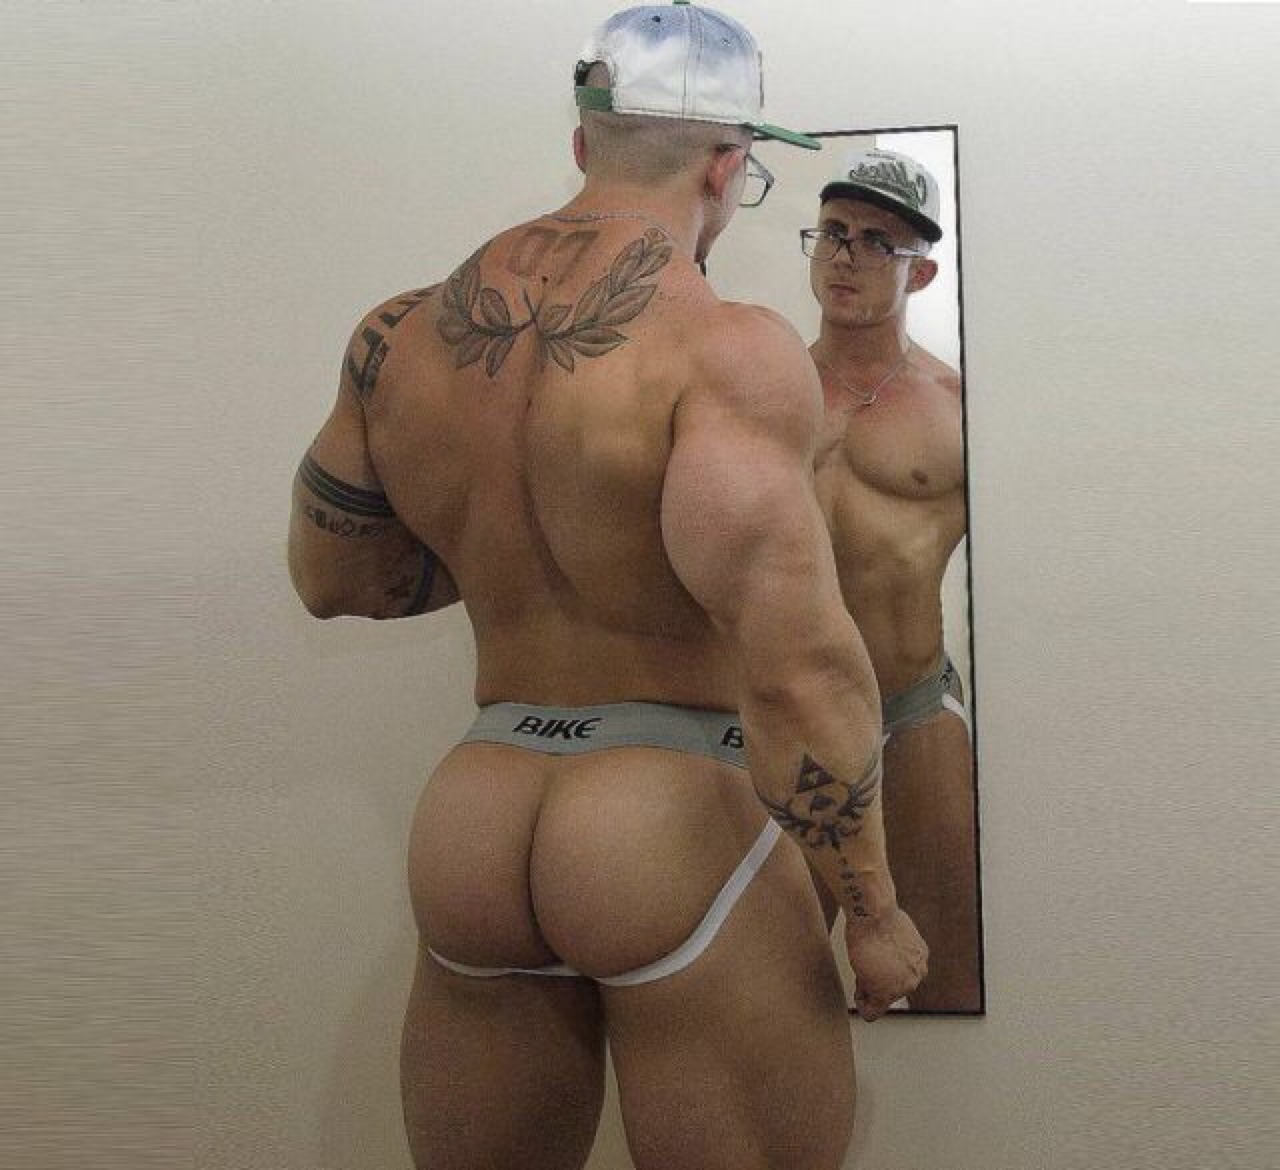 from Tony gay muscle videos